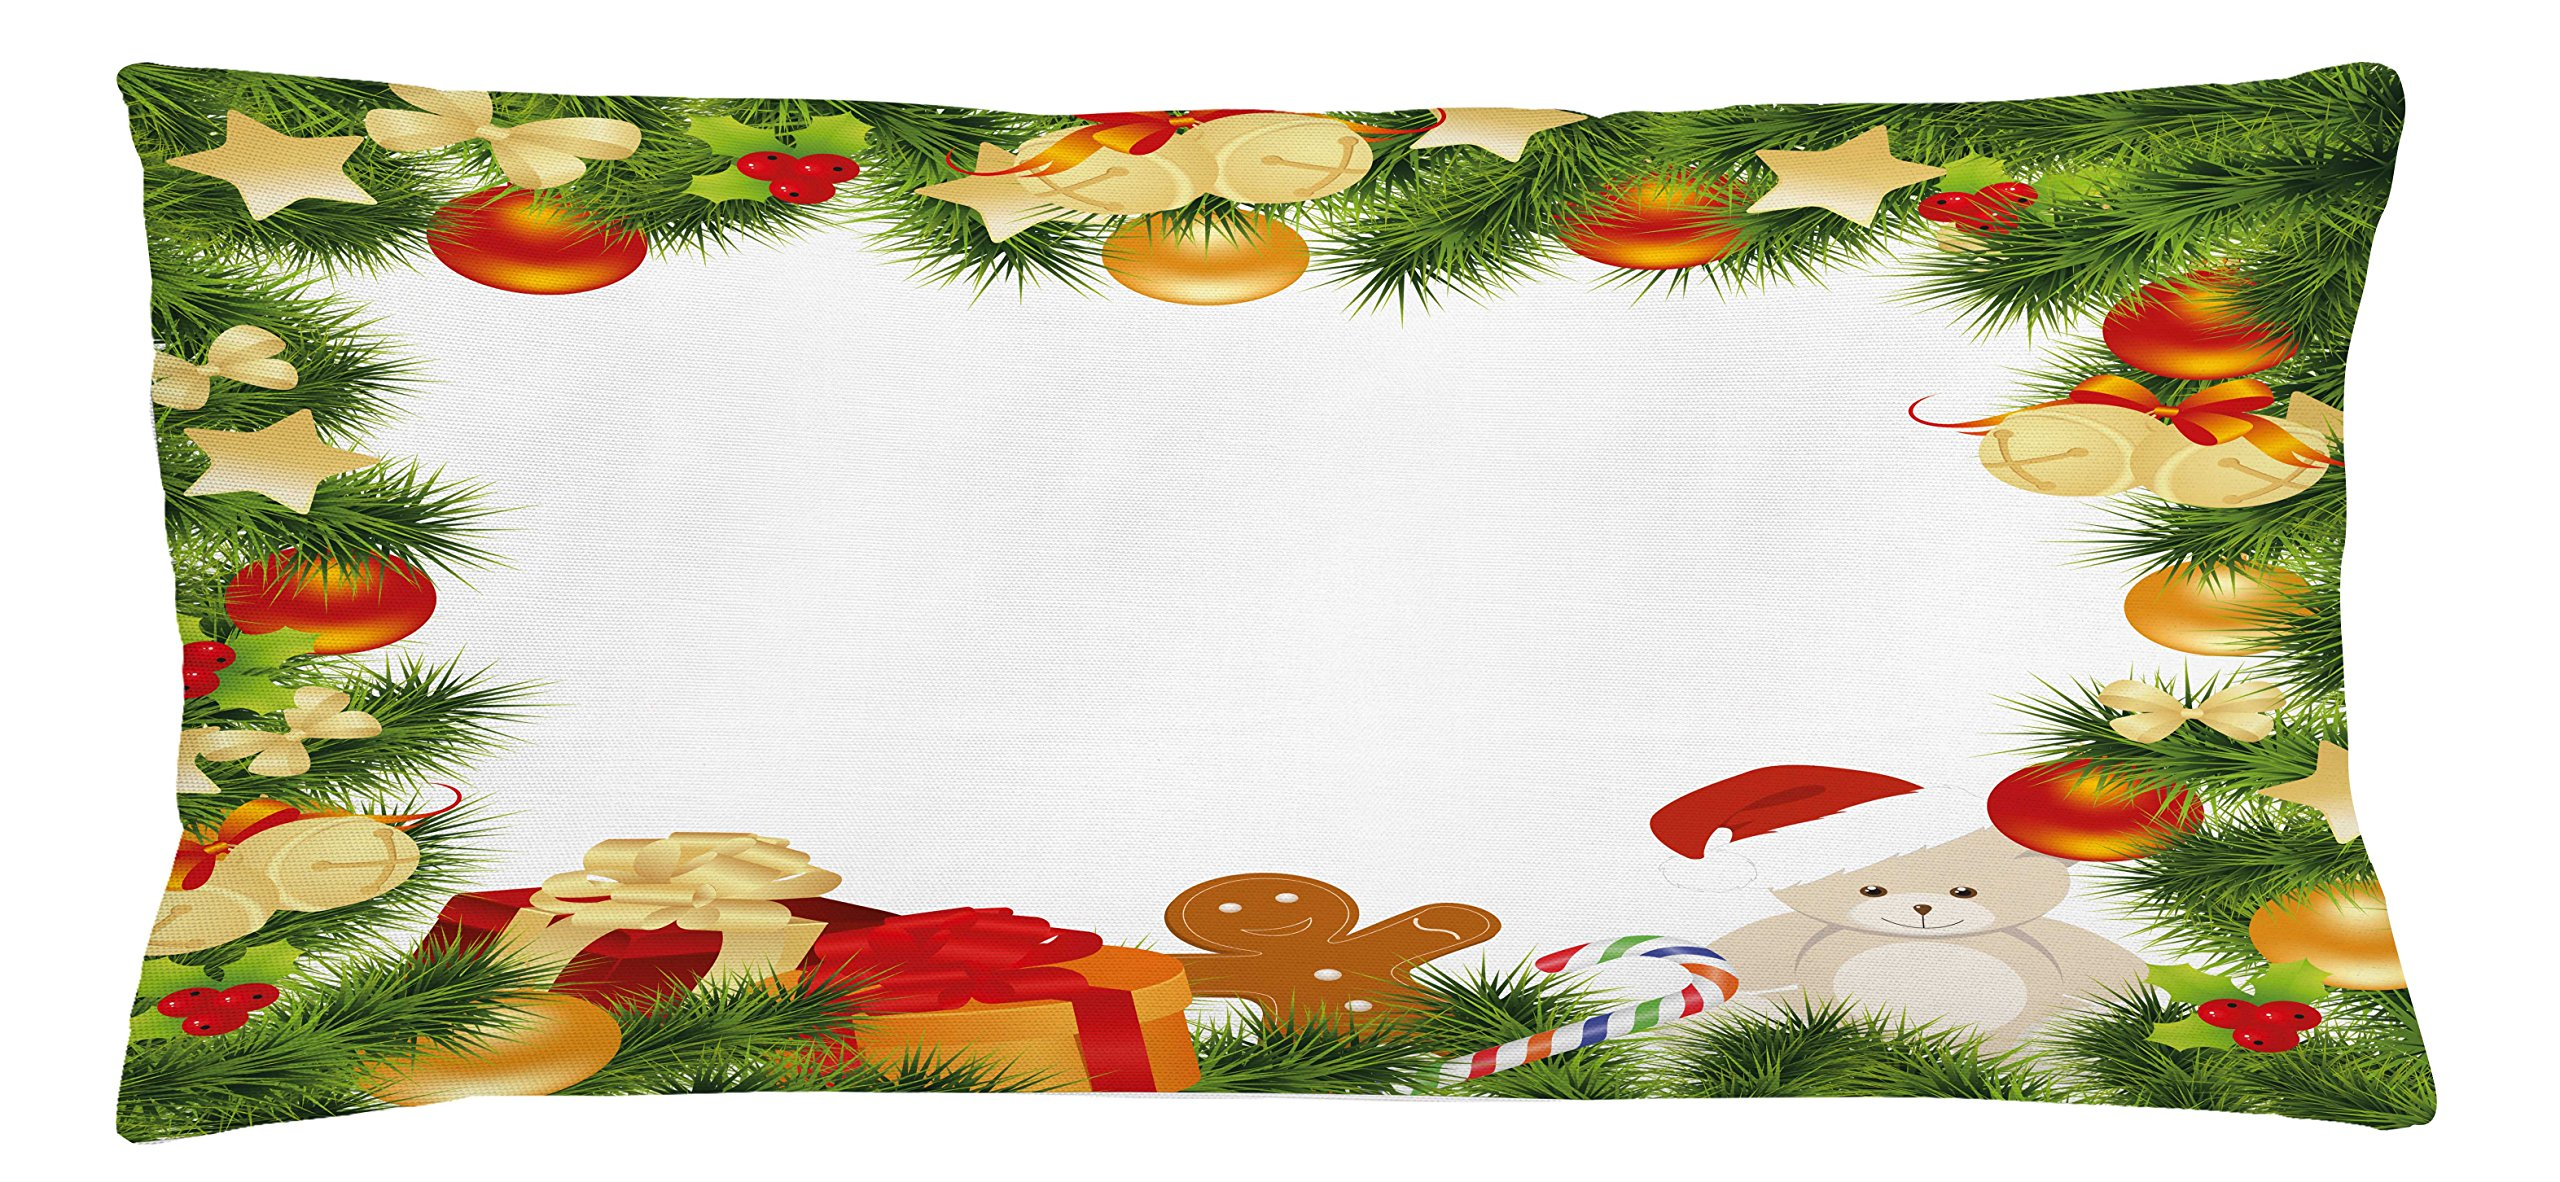 Ambesonne Kids Christmas Throw Pillow Cushion Cover, Garland Frame Design with Evergreen Fir Tree Bear Toy and Gingerbread Man, Decorative Square Accent Pillow Case, 36 X 16 inches, Multicolor